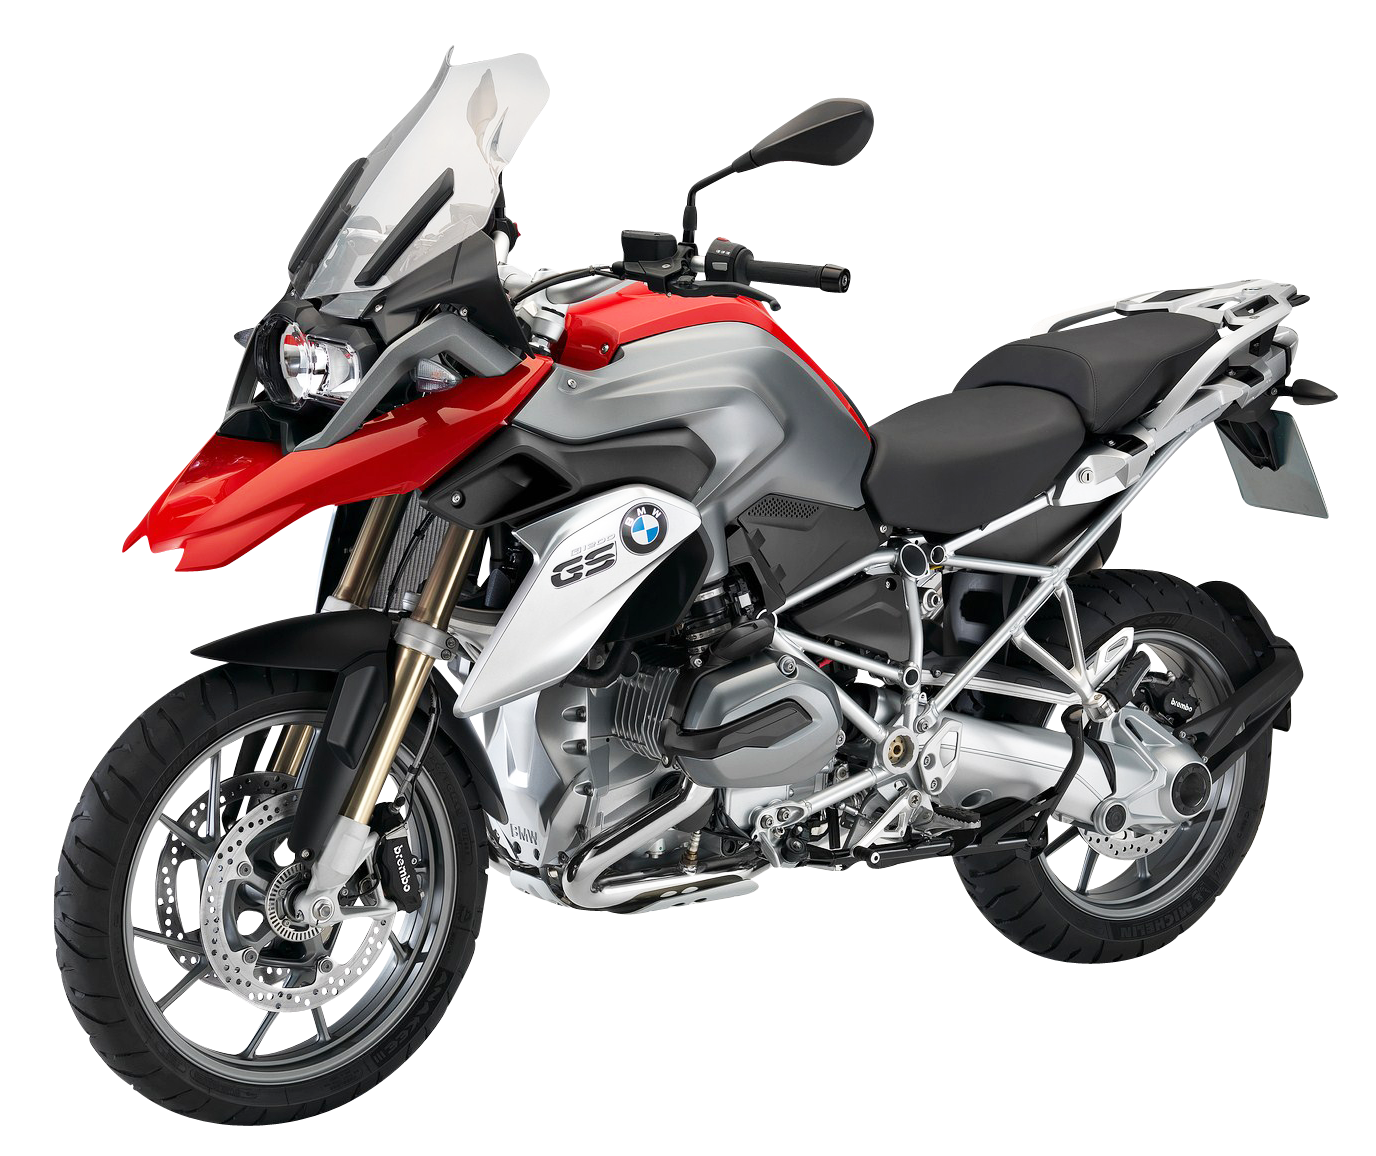 Bmw motorcycle png. R gs adventure image